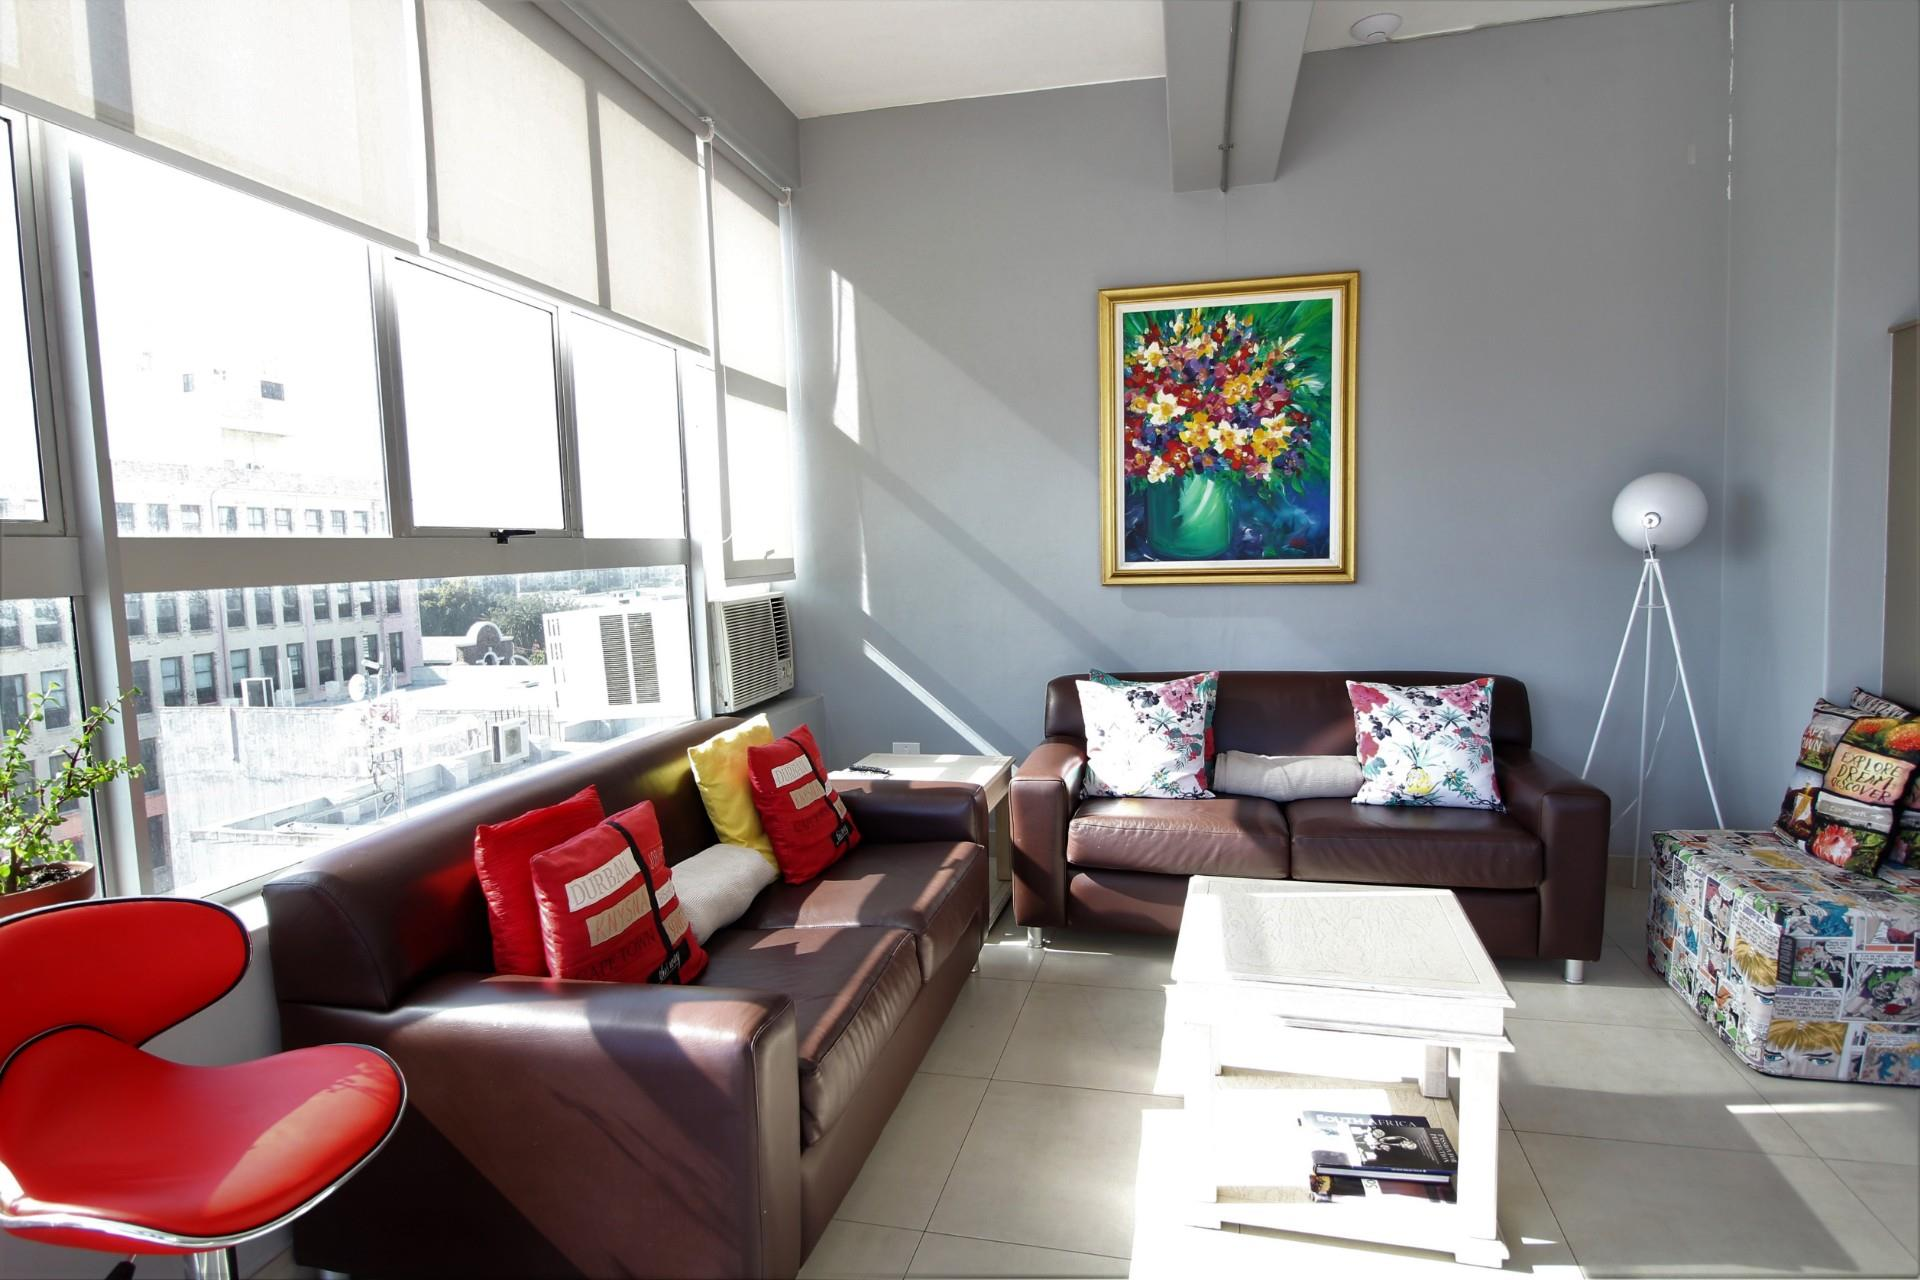 3 Bedroom Apartment For Sale in Cape Town City Centre